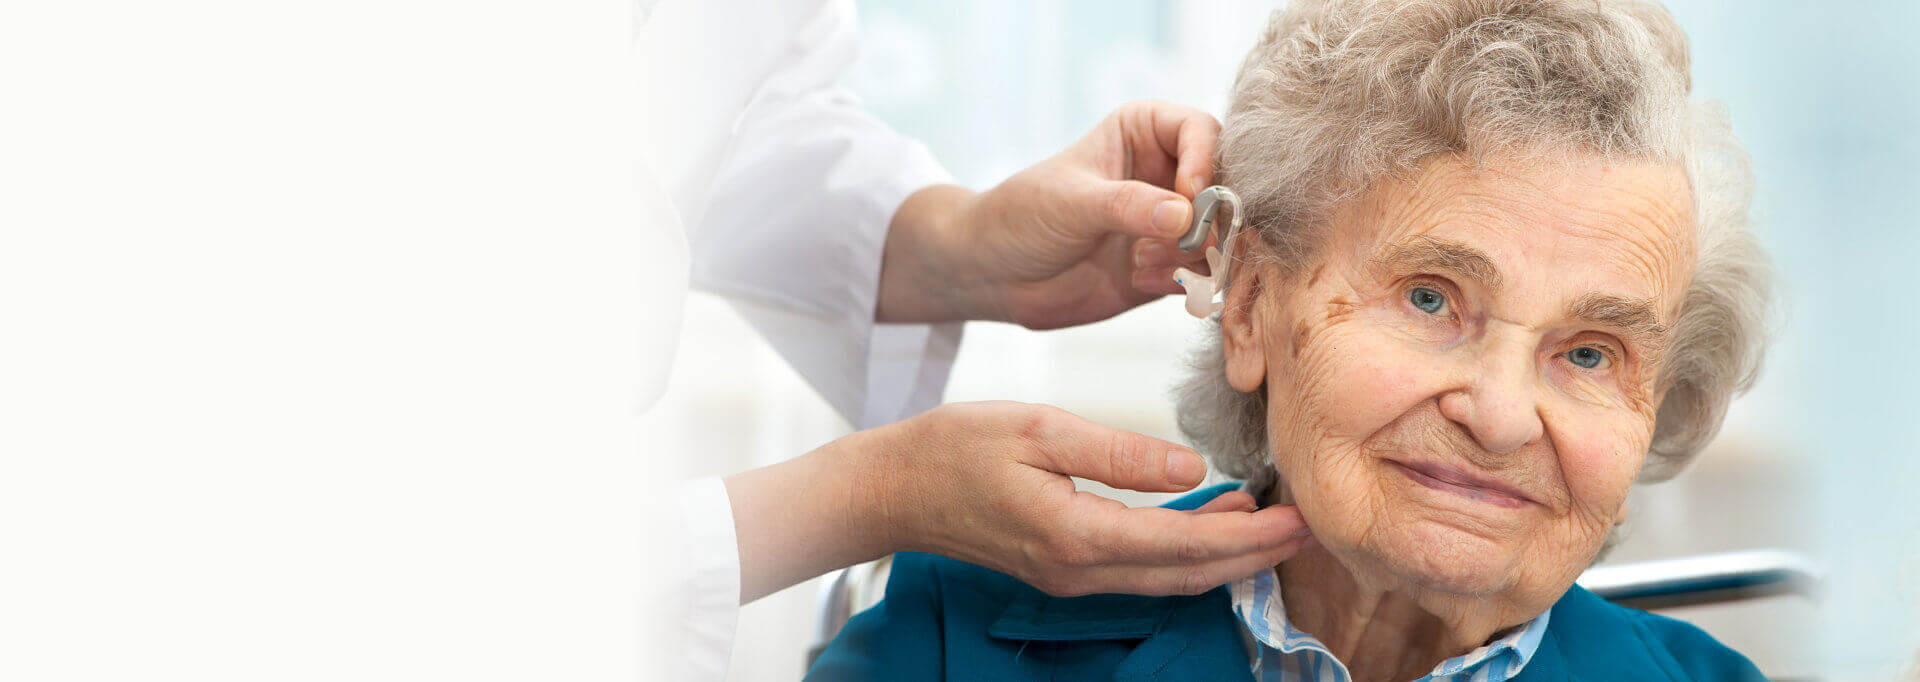 doctor putting an earpiece into a senior woman